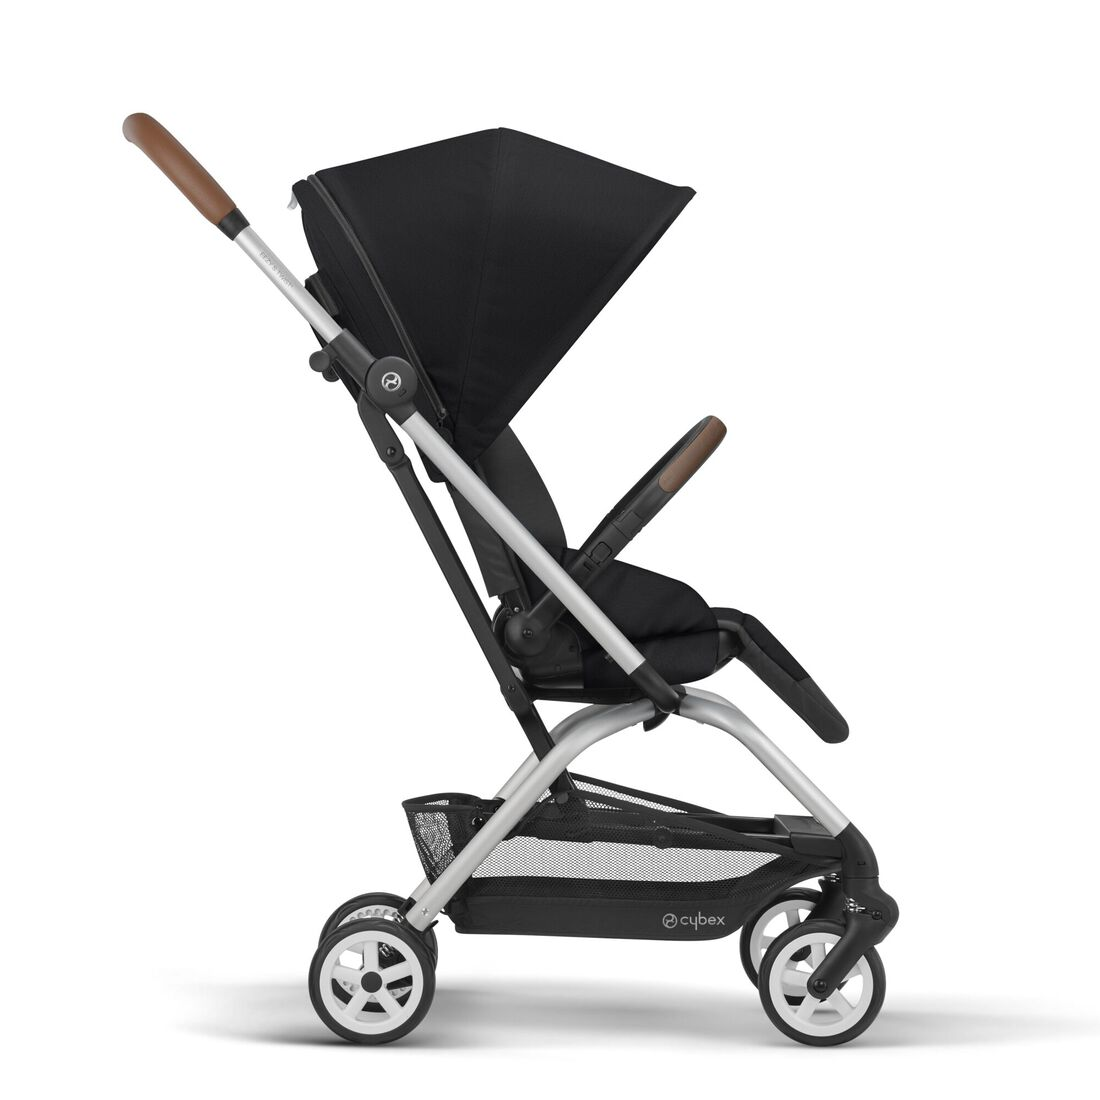 CYBEX Eezy S Twist 2 - Deep Black (Silberner Rahmen) in Deep Black (Silver Frame) large Bild 2